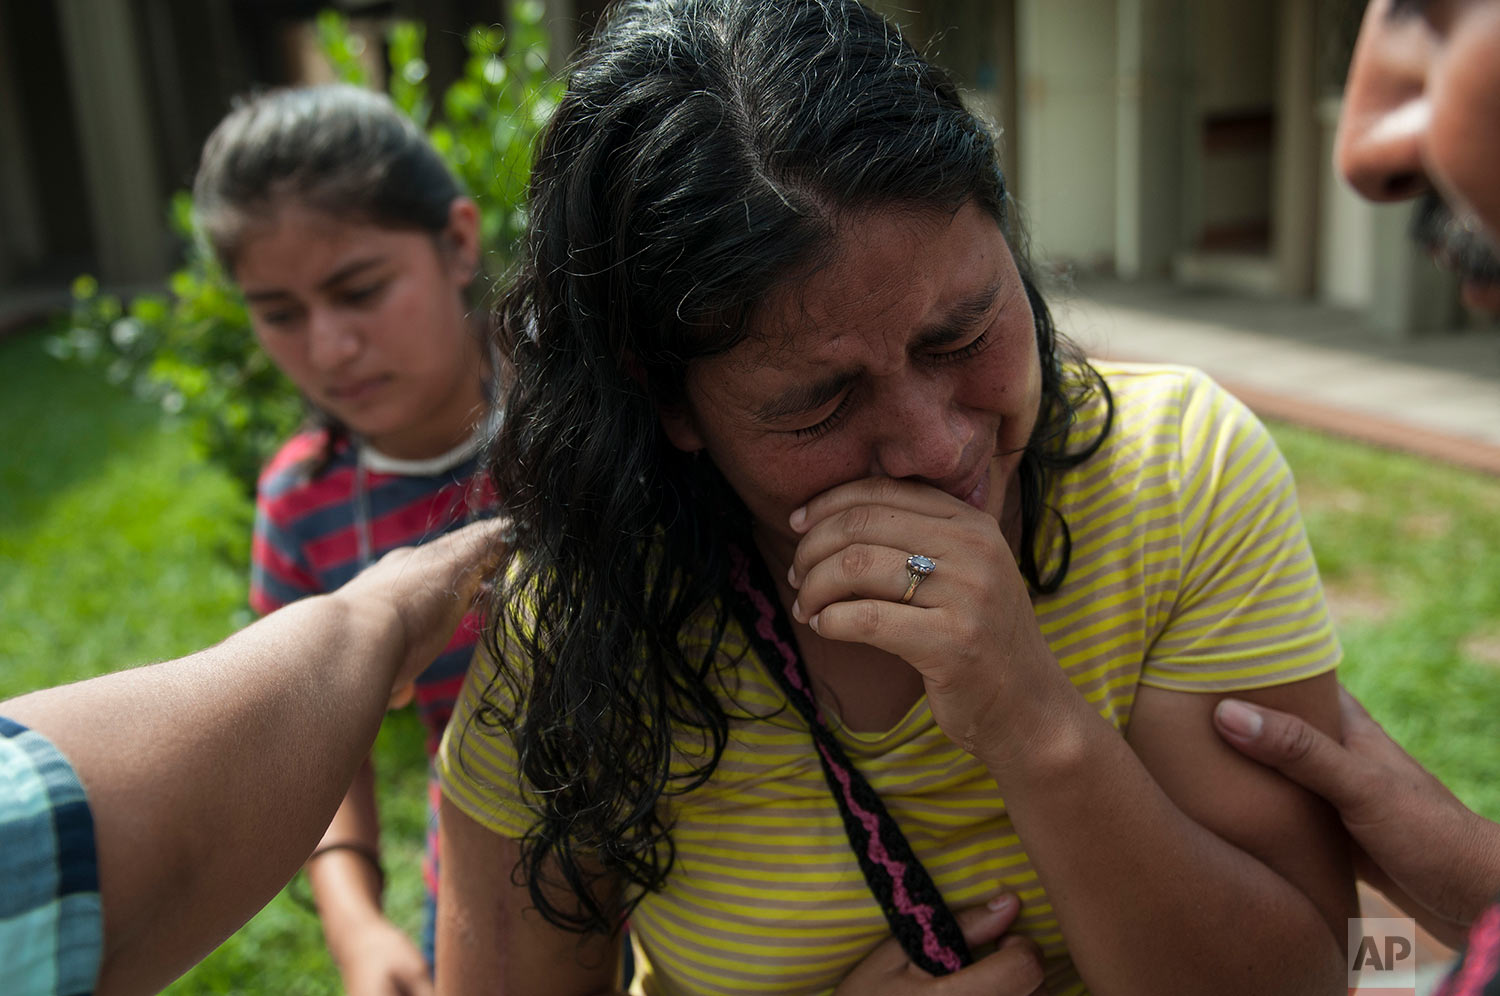 """Lilian Hernandez cries as she is comforted by her husband at the Mormon church that has been enabled as a shelter near Escuintla, Guatemala, Tuesday, June 5, 2018. Hernandez lost 36 family members in all, missing and presumed dead in the town of San Miguel Los Lotes after the fiery volcanic eruption of the Volcan de Fuego, or """"Volcano of Fire, in south-central Guatemala. (AP Photo/Oliver de Ros)"""